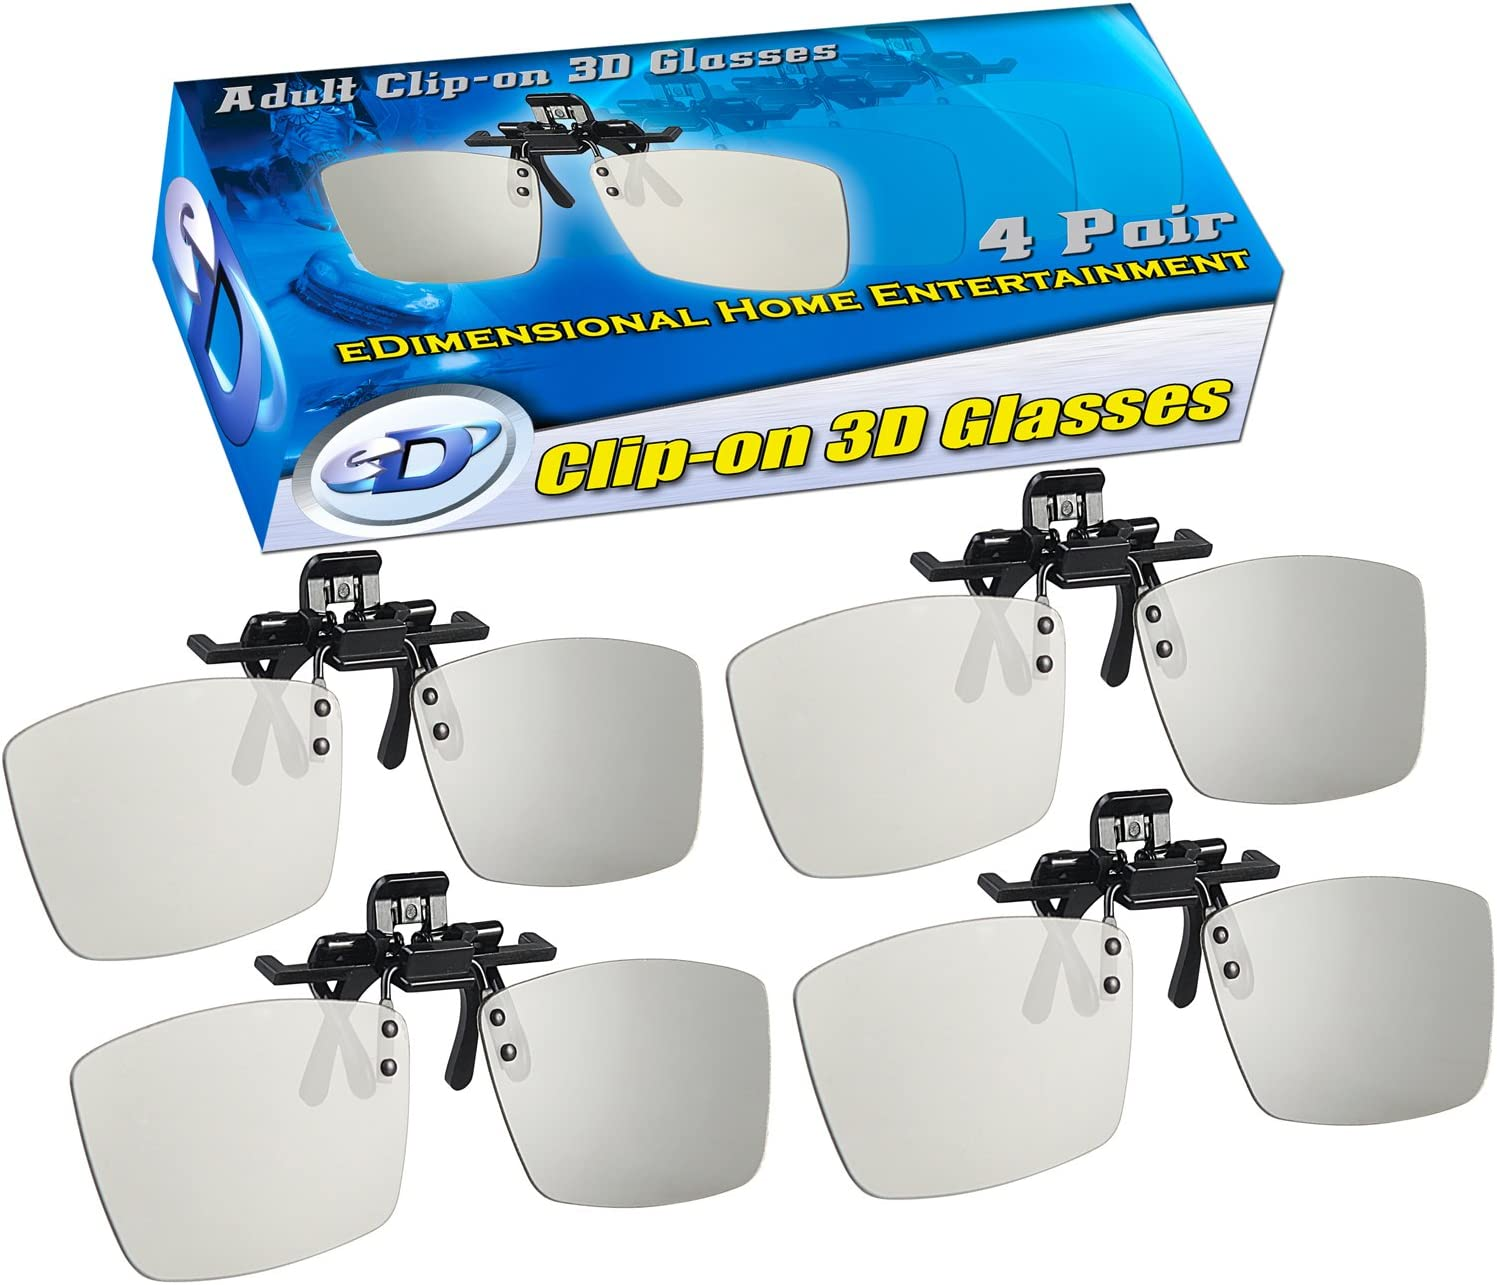 Toshiba LG ClipOn 4 Pack Panasonic Philips and JVC 4 Pack Clip-ON Passive 3D Glasses Genuine eDimensional Sealed Circular Polarized 3D Glasses for Passive 3D TVs Televisions from Sony Vizio